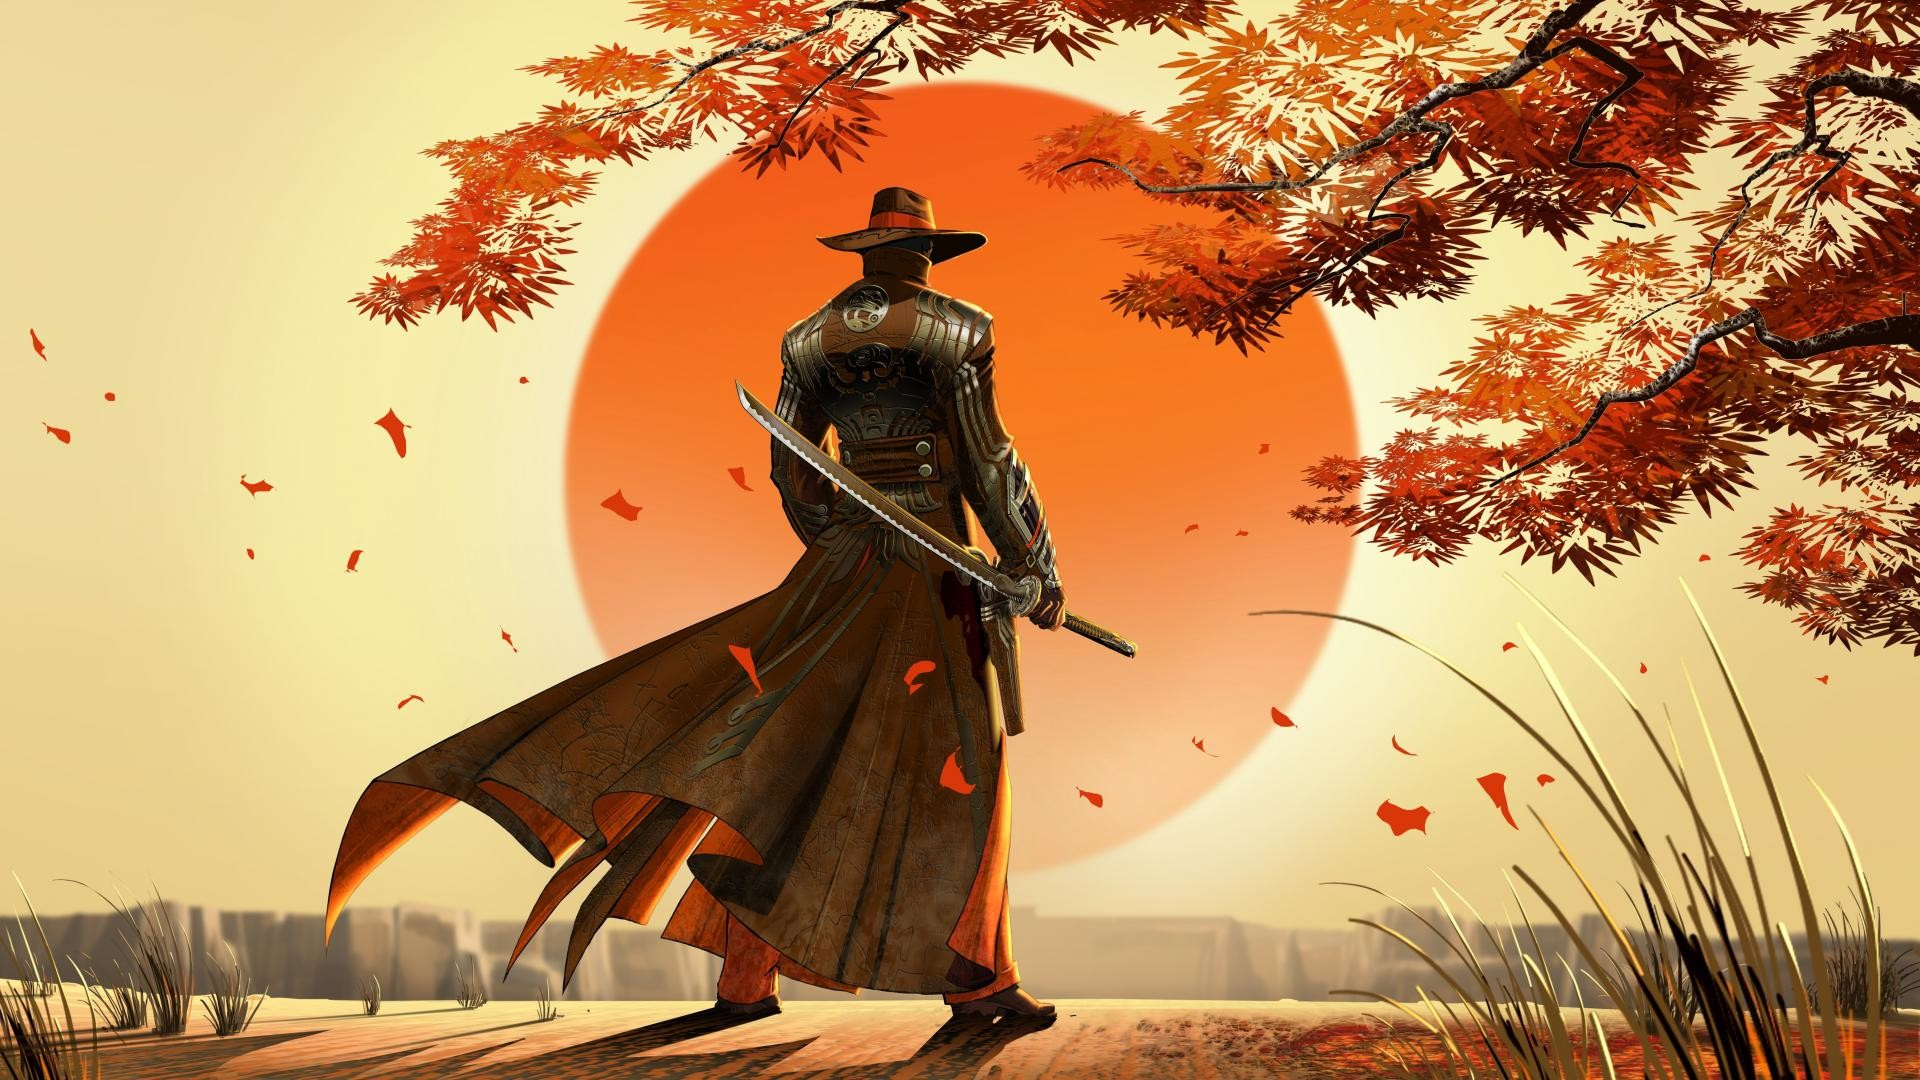 Res: 1920x1080, Video games samurai western red steel swords cowboy hats wallpaper.jpg